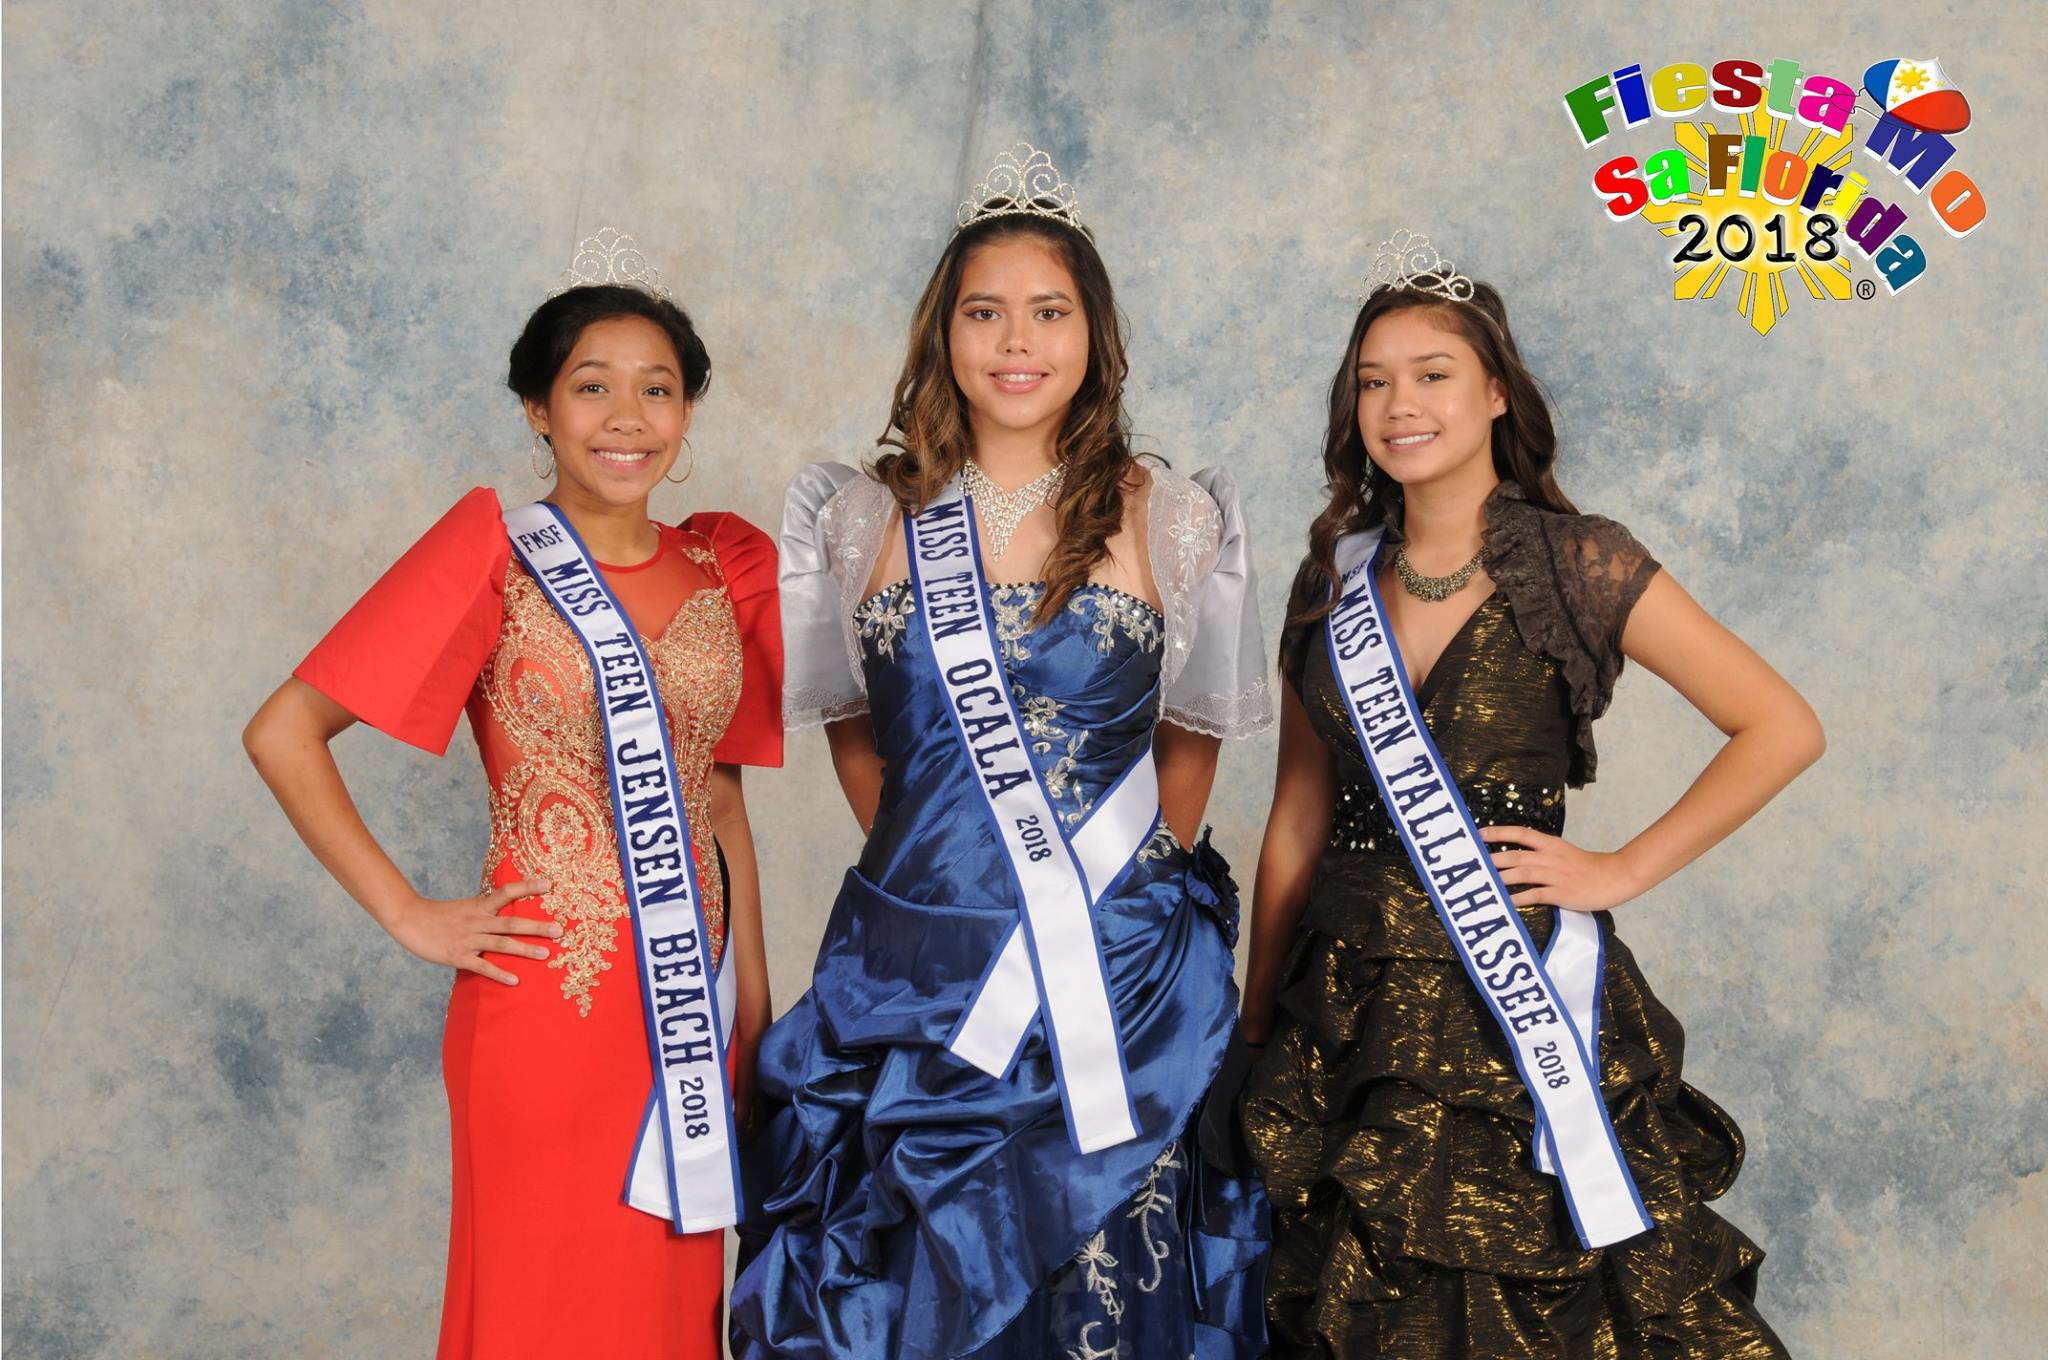 A Pageant For A Cause